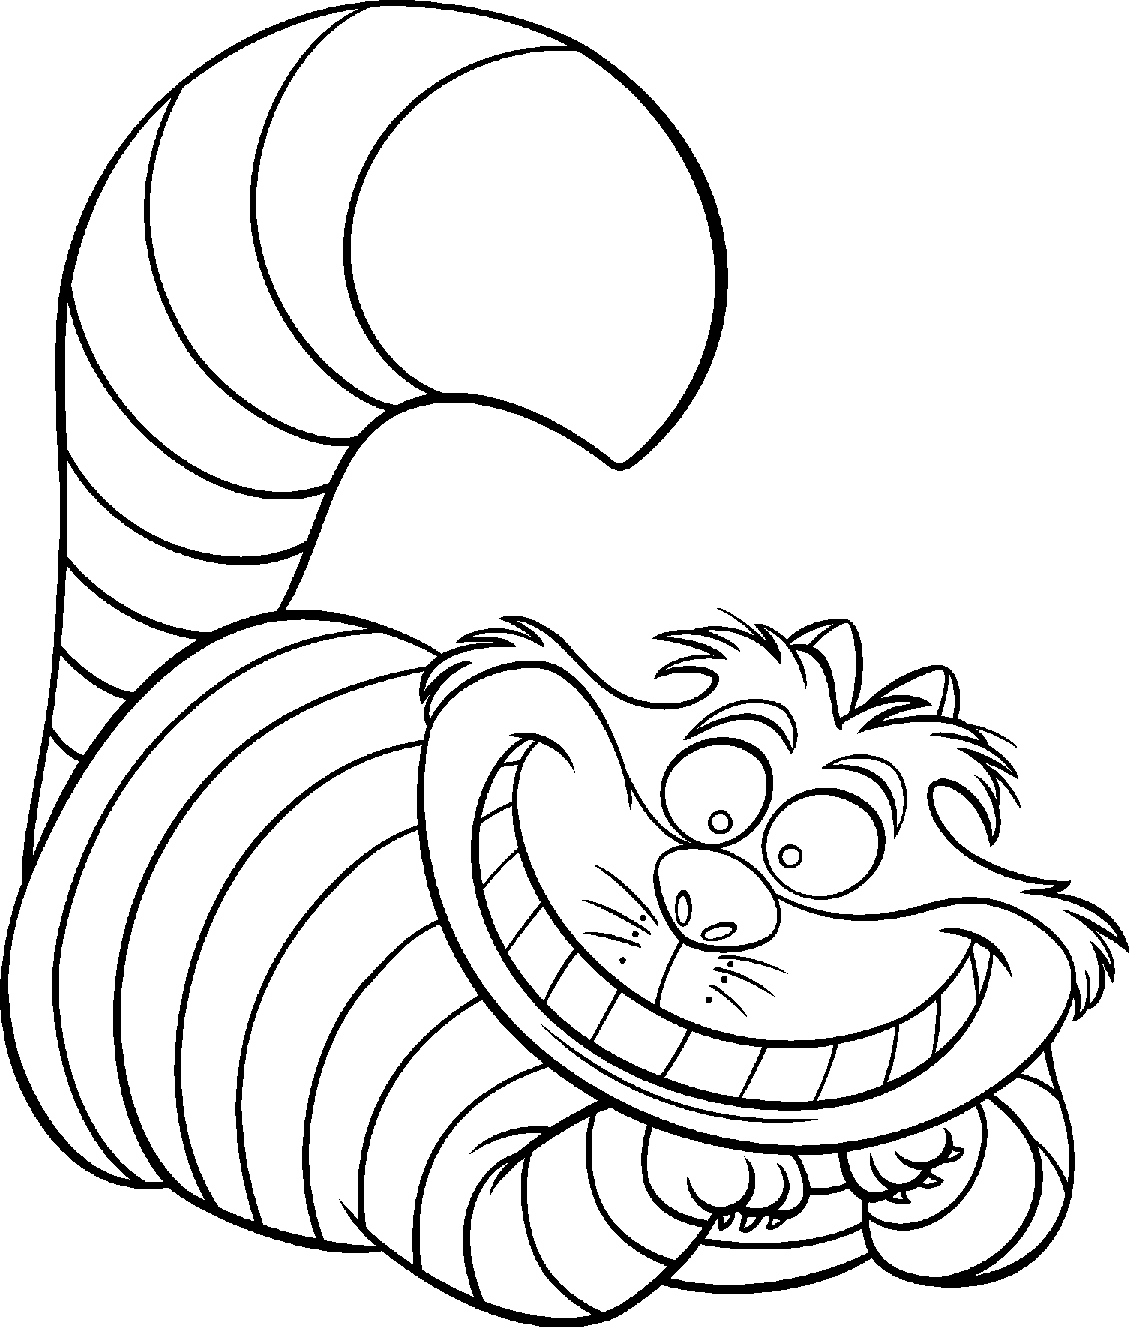 Free Printable Funny Coloring Pages For Kids Free Coloring Book Pages